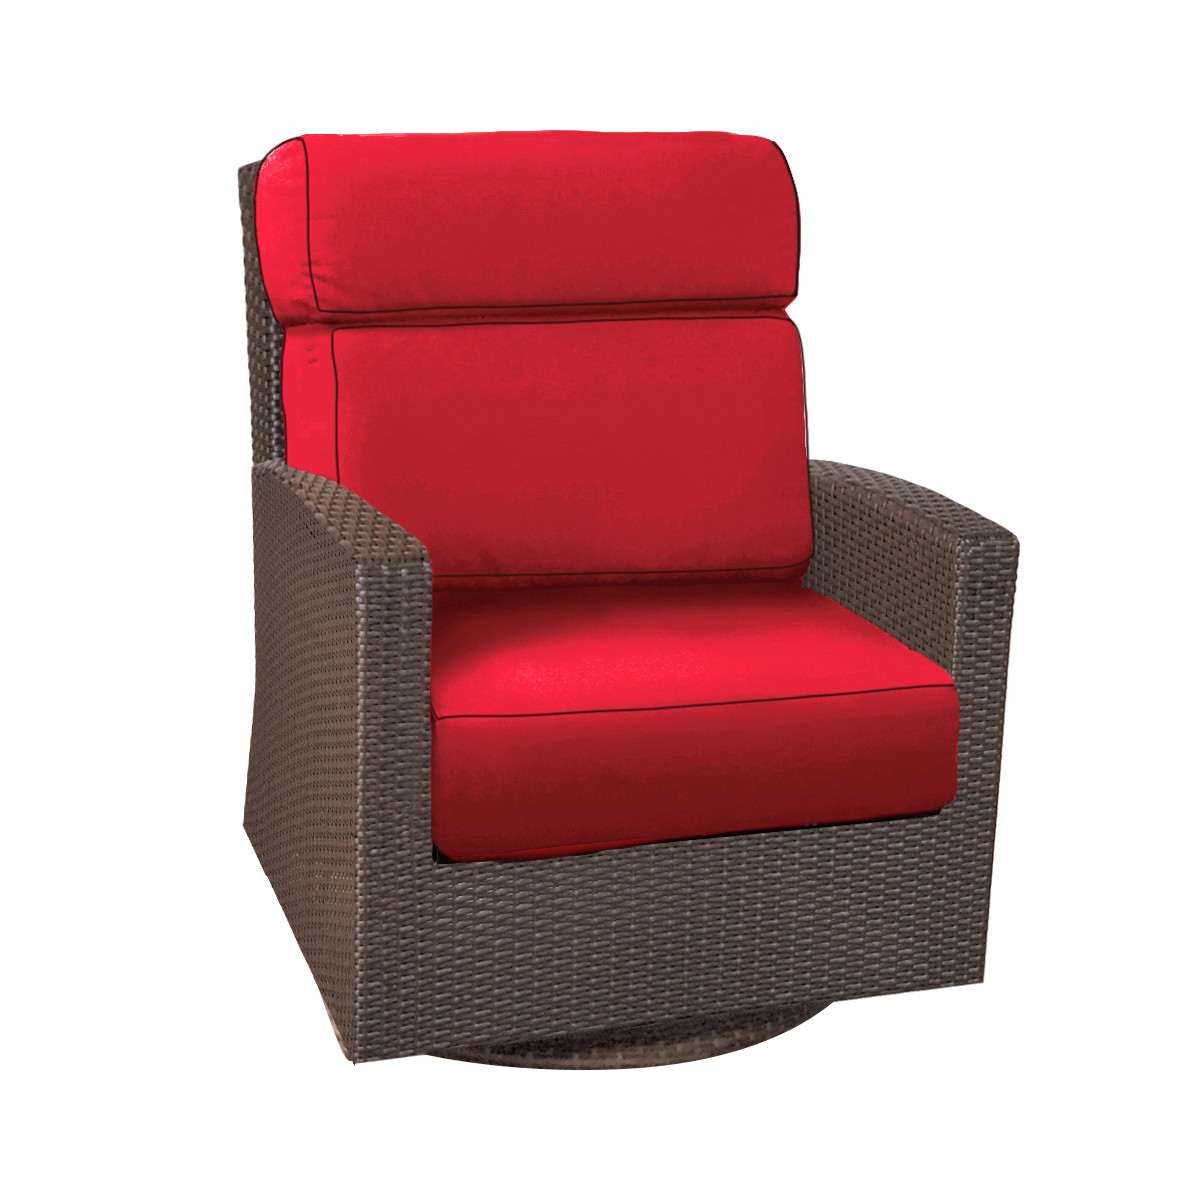 Tremendous Forever Patio Barbados Wicker High Back Swivel Rocker Club Chair By Northcape International Gmtry Best Dining Table And Chair Ideas Images Gmtryco